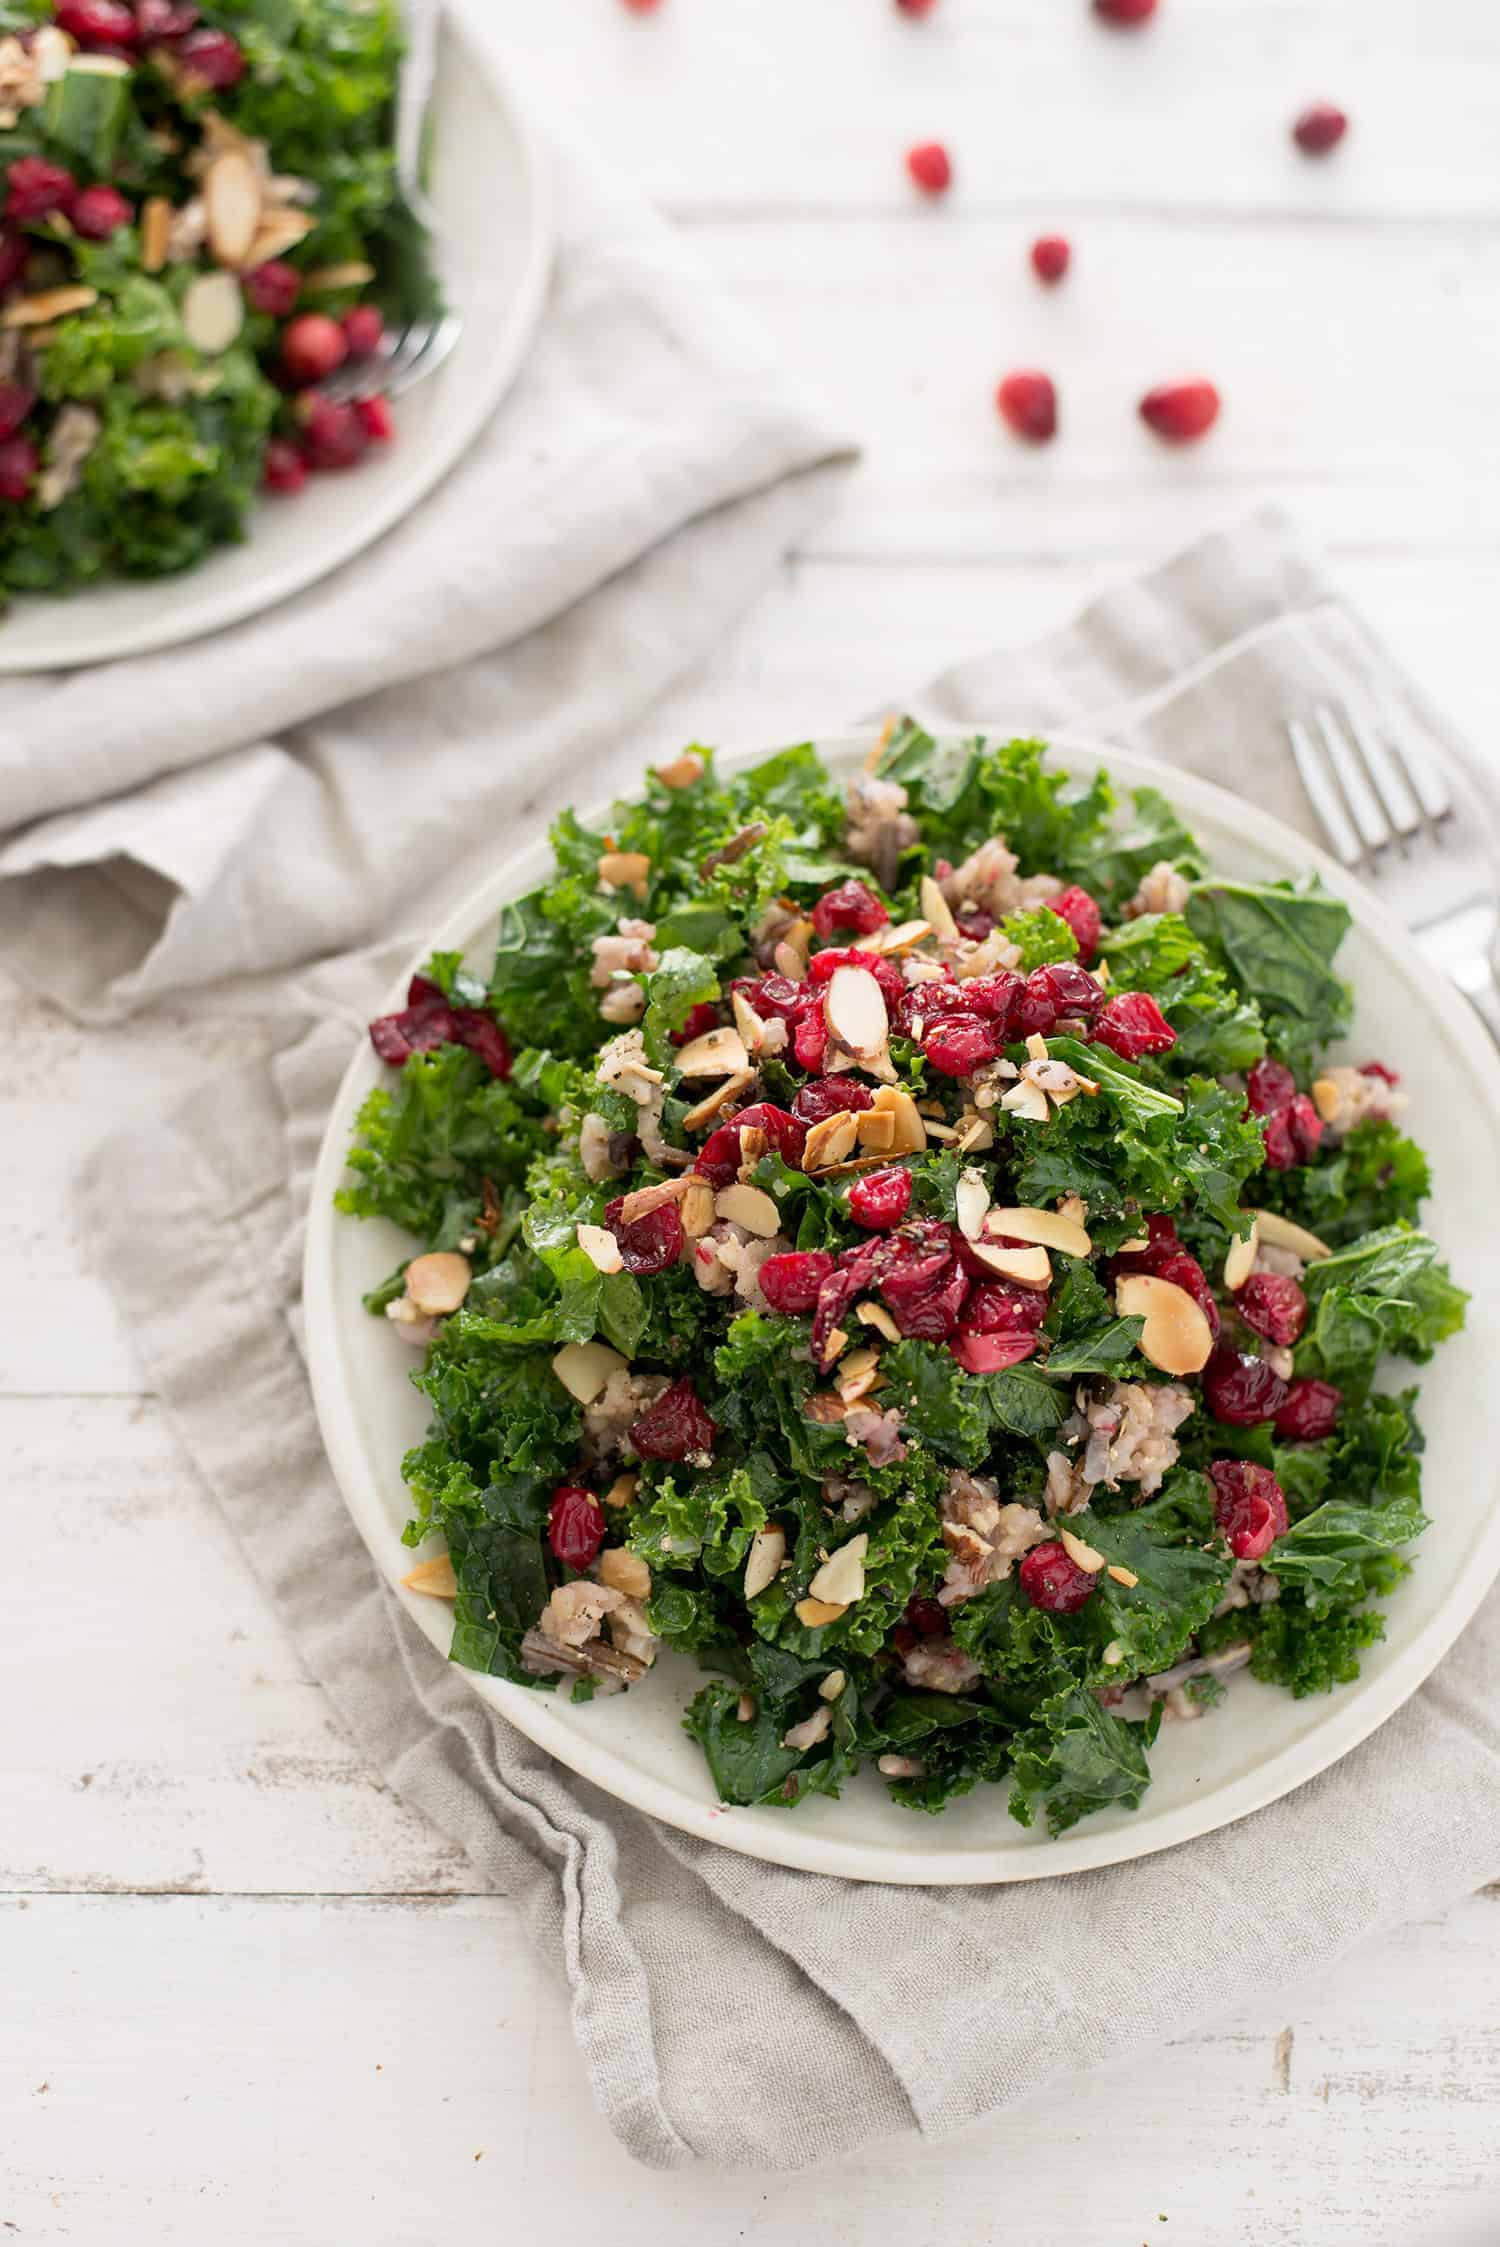 Roasted Cranberry, Wild Rice and Kale Salad! The perfect salad for the holiday season. Roasted thyme cranberries with wild rice, toasted almonds, wild rice and maple-shallot dressing. Vegan and Gluten-Free.   www.delishknowledge.com